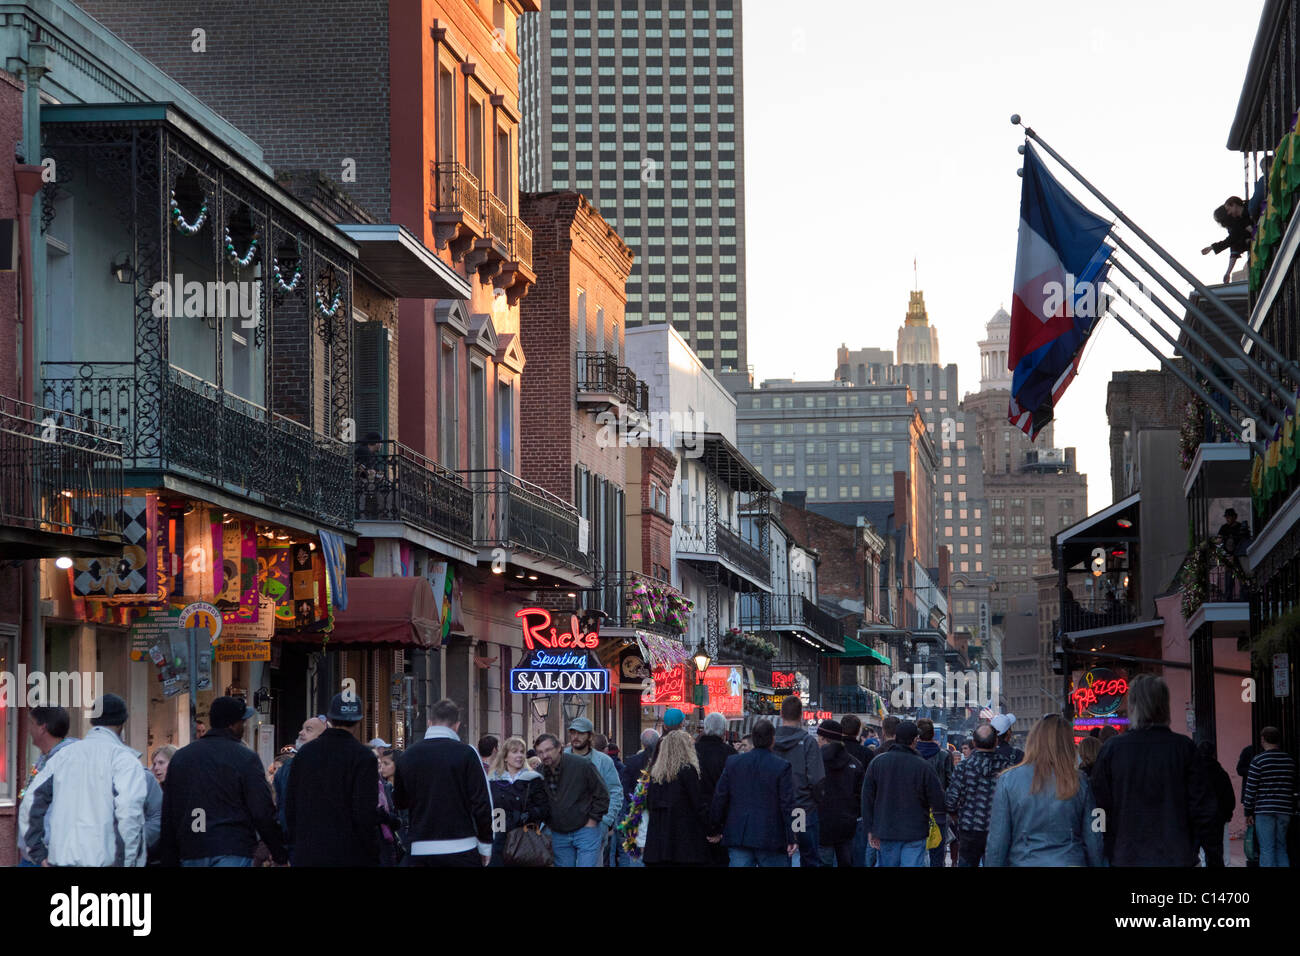 People cruising by bars and nightclubs on Bourbon Street at night in New Orleans - Stock Image